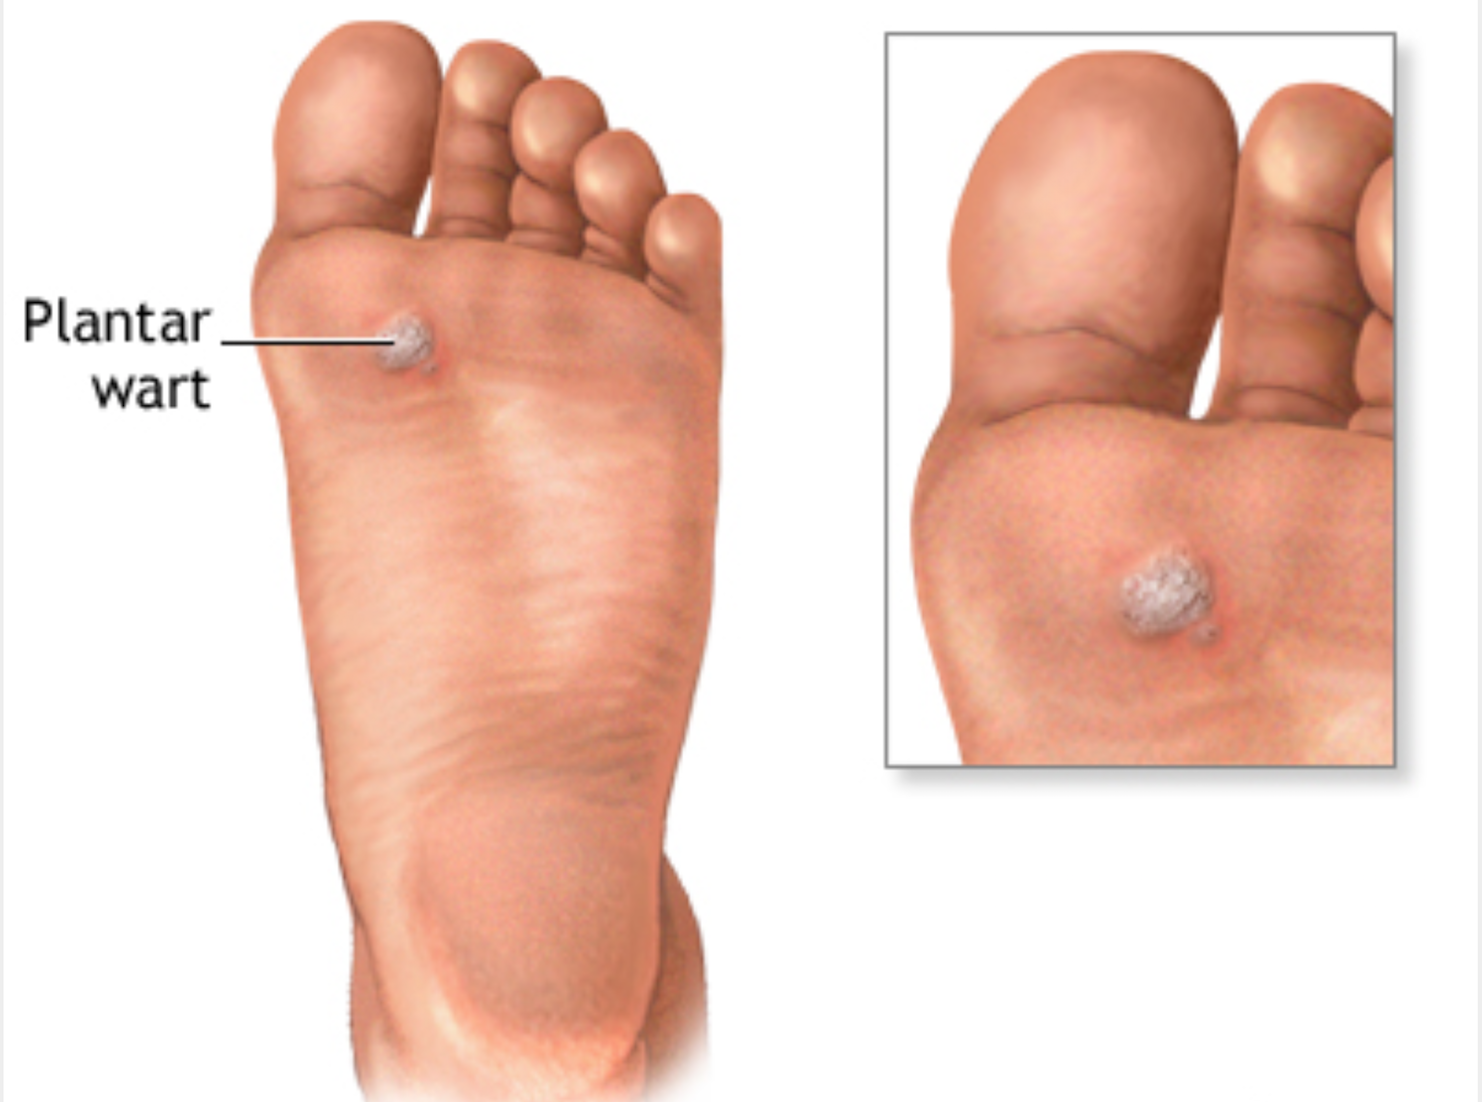 Warts Podiatry Orthopedics Physical Therapy